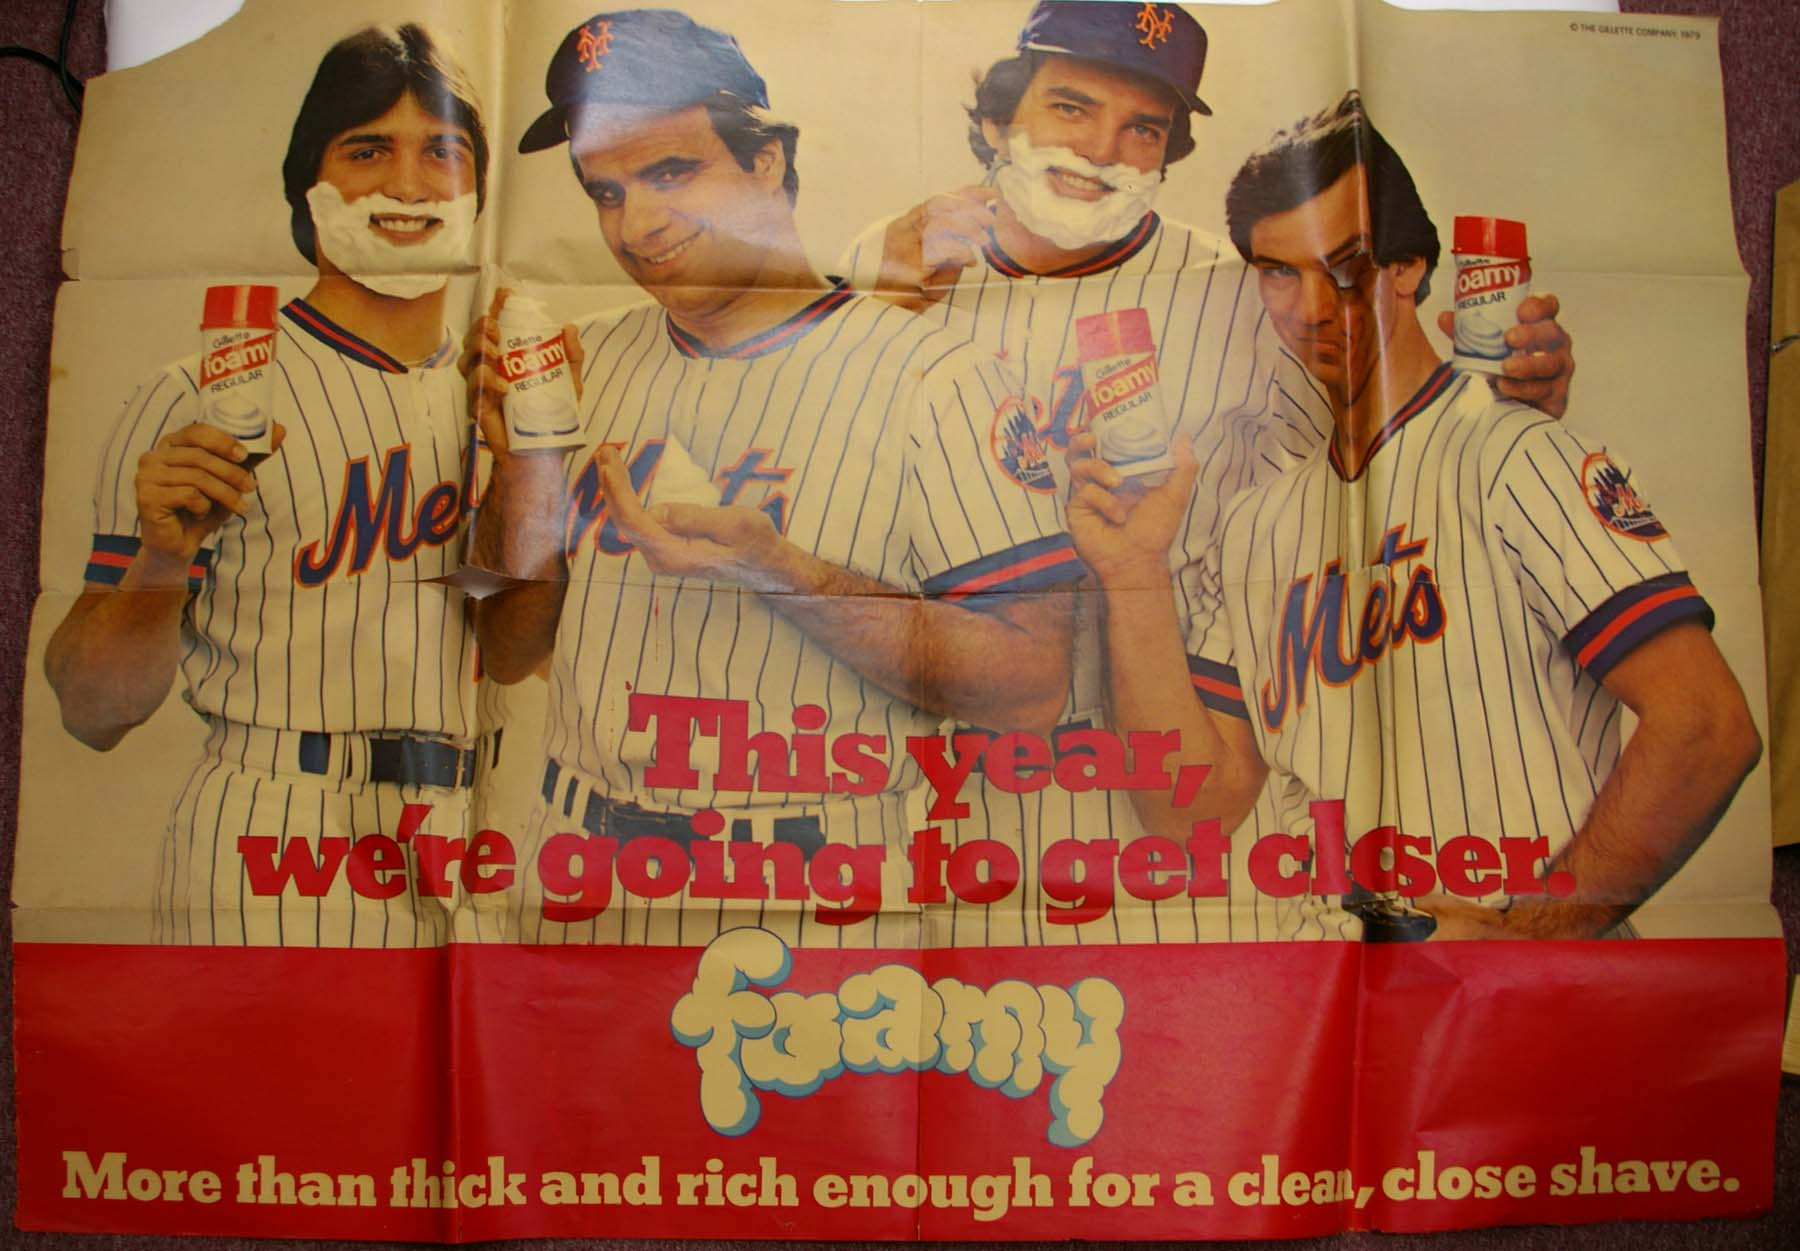 Lot #1516 1979   Ed Kranepool Mets Large Format Subway Poster Cond: Good